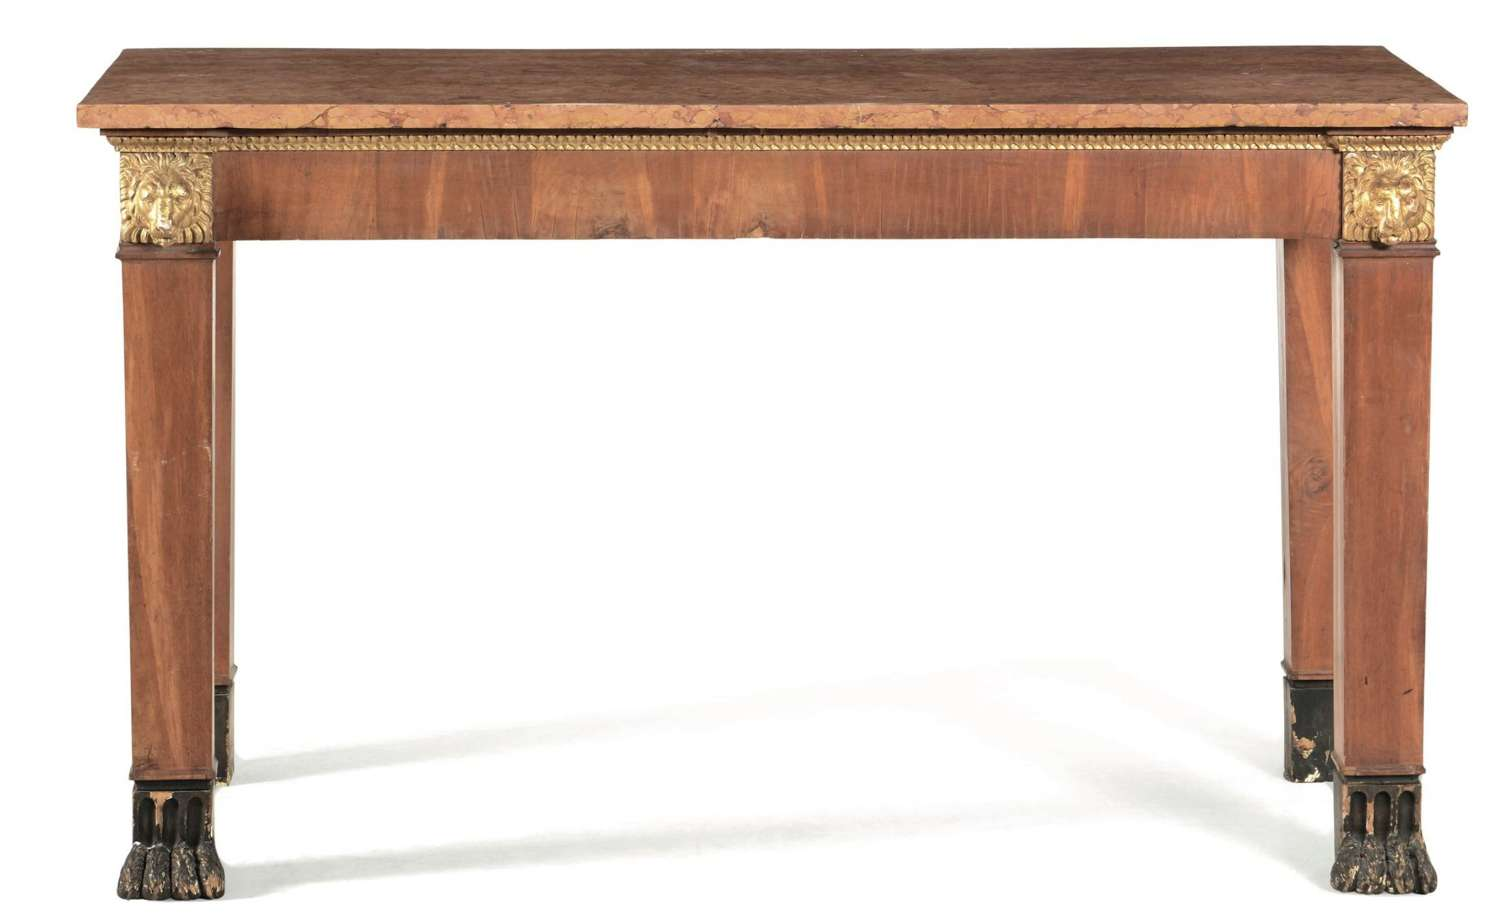 AN 18TH CENTURY NEO-CLASSICAL CONSOLE